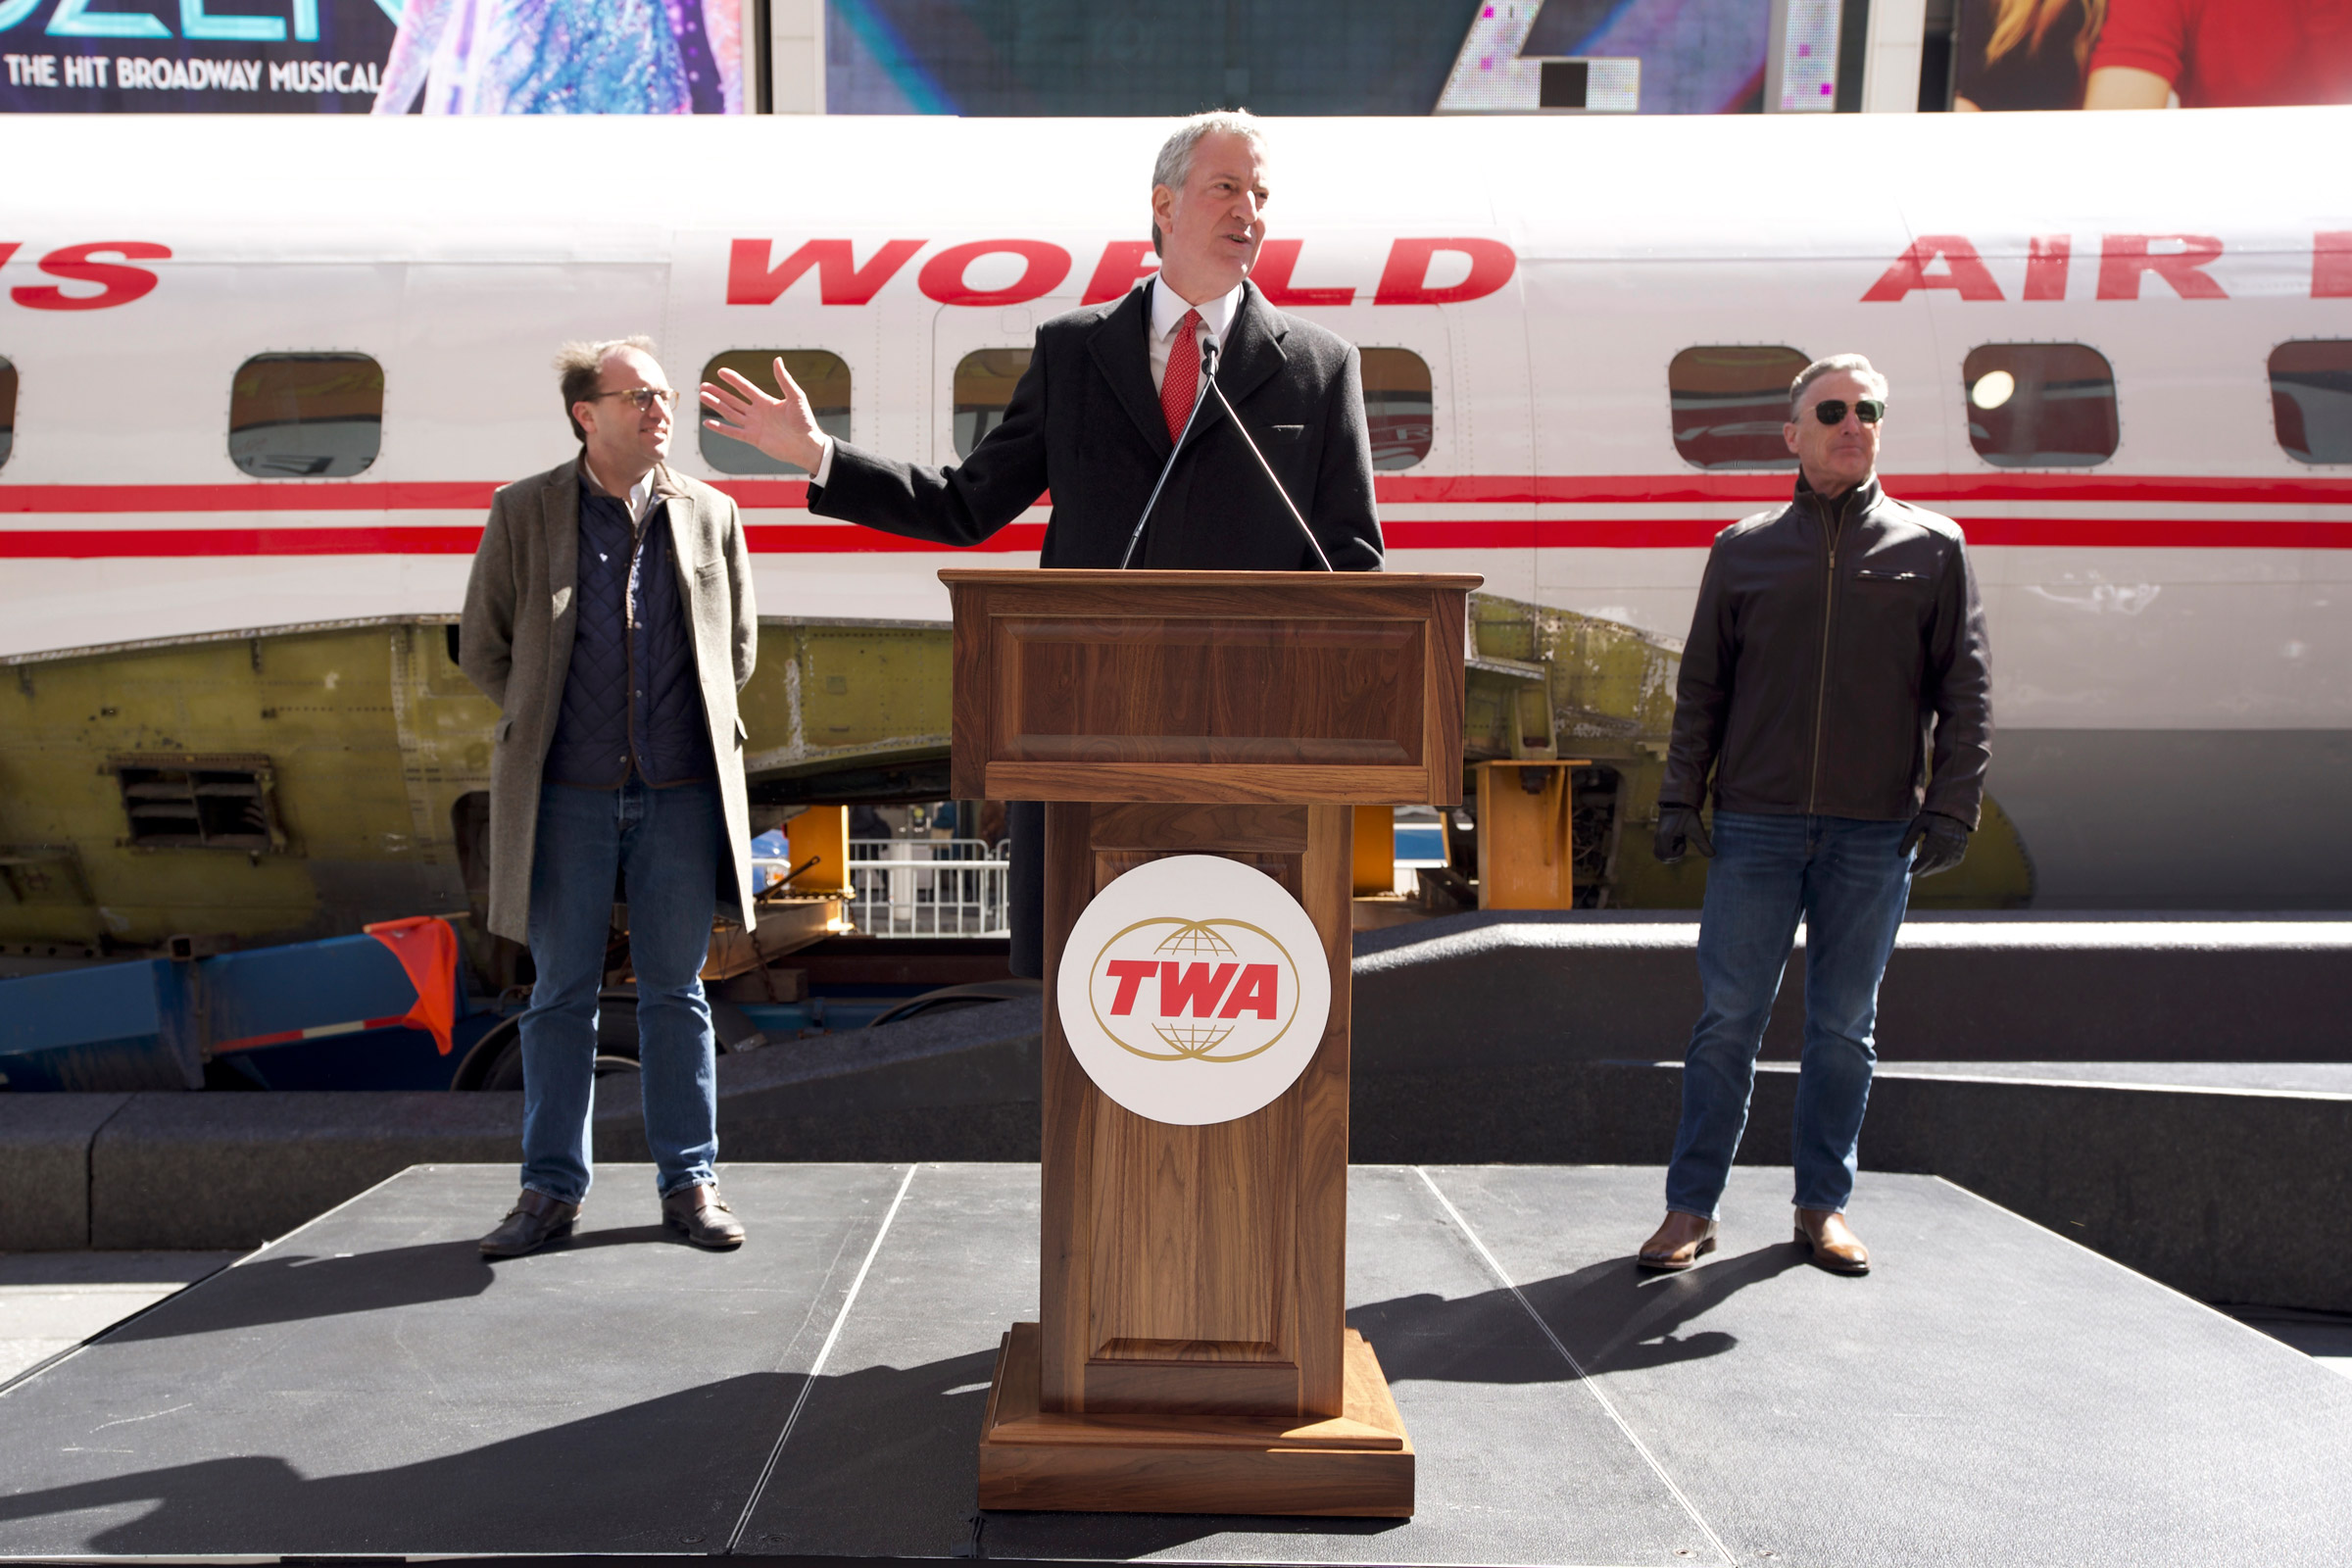 New York City Mayor Bill de Blasio (center) with CEO and Managing Partner of MCR and MORSE Development Tyler Morse (left) and New York Hotel and Motel Trades Council President Peter Ward (right) on March 23, 2019.